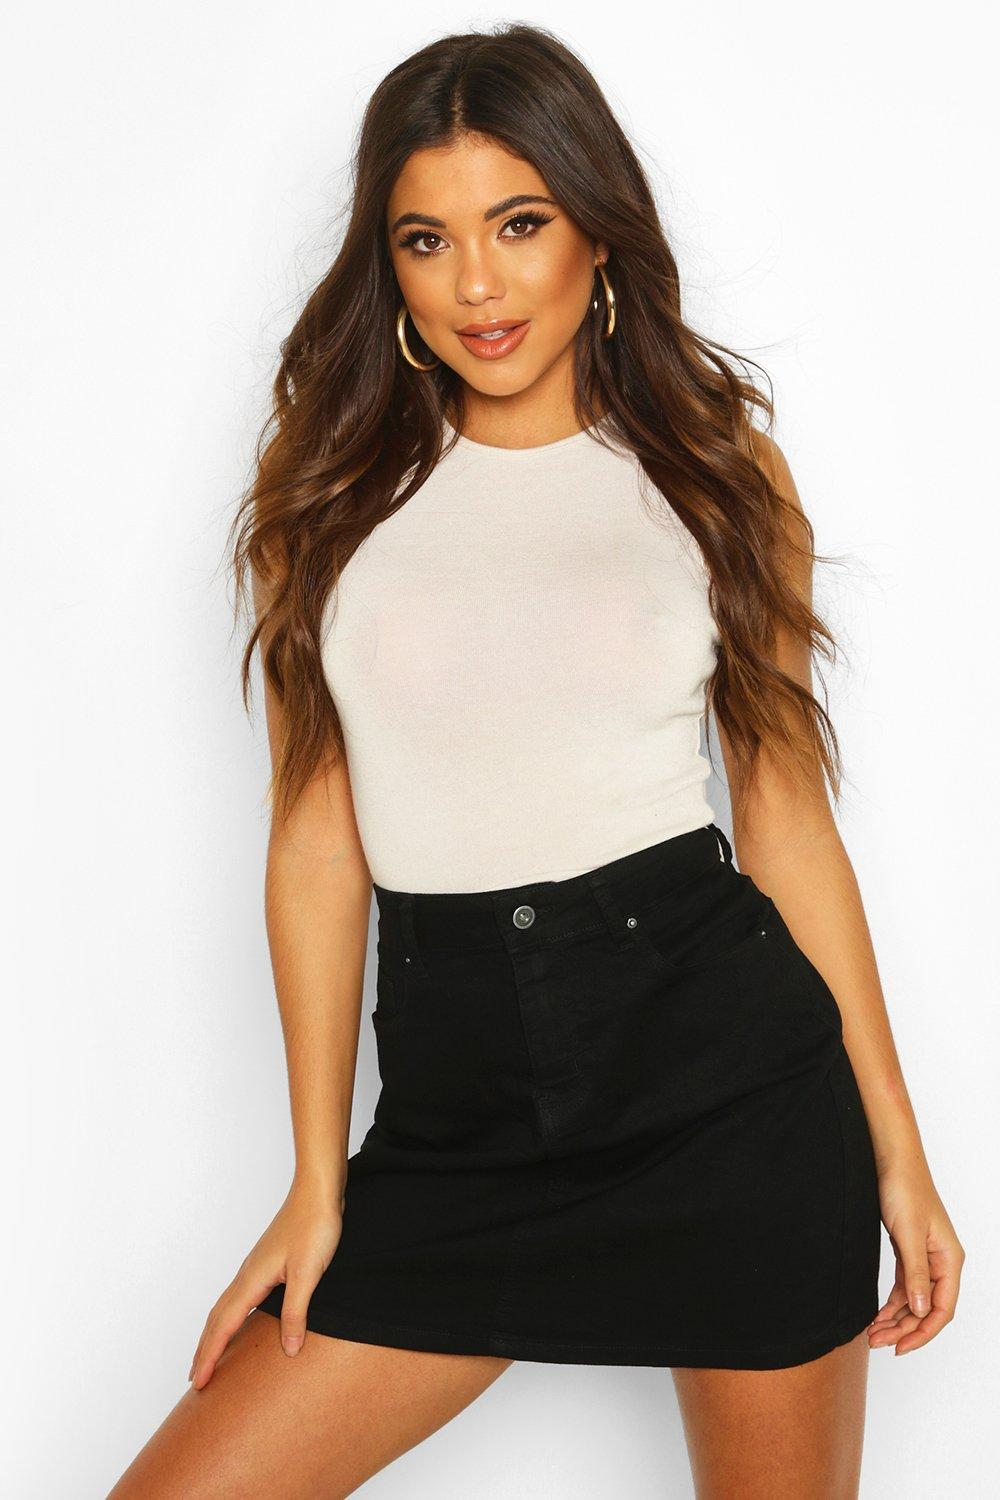 Denim skirts | Womens denim skirts at boohoo